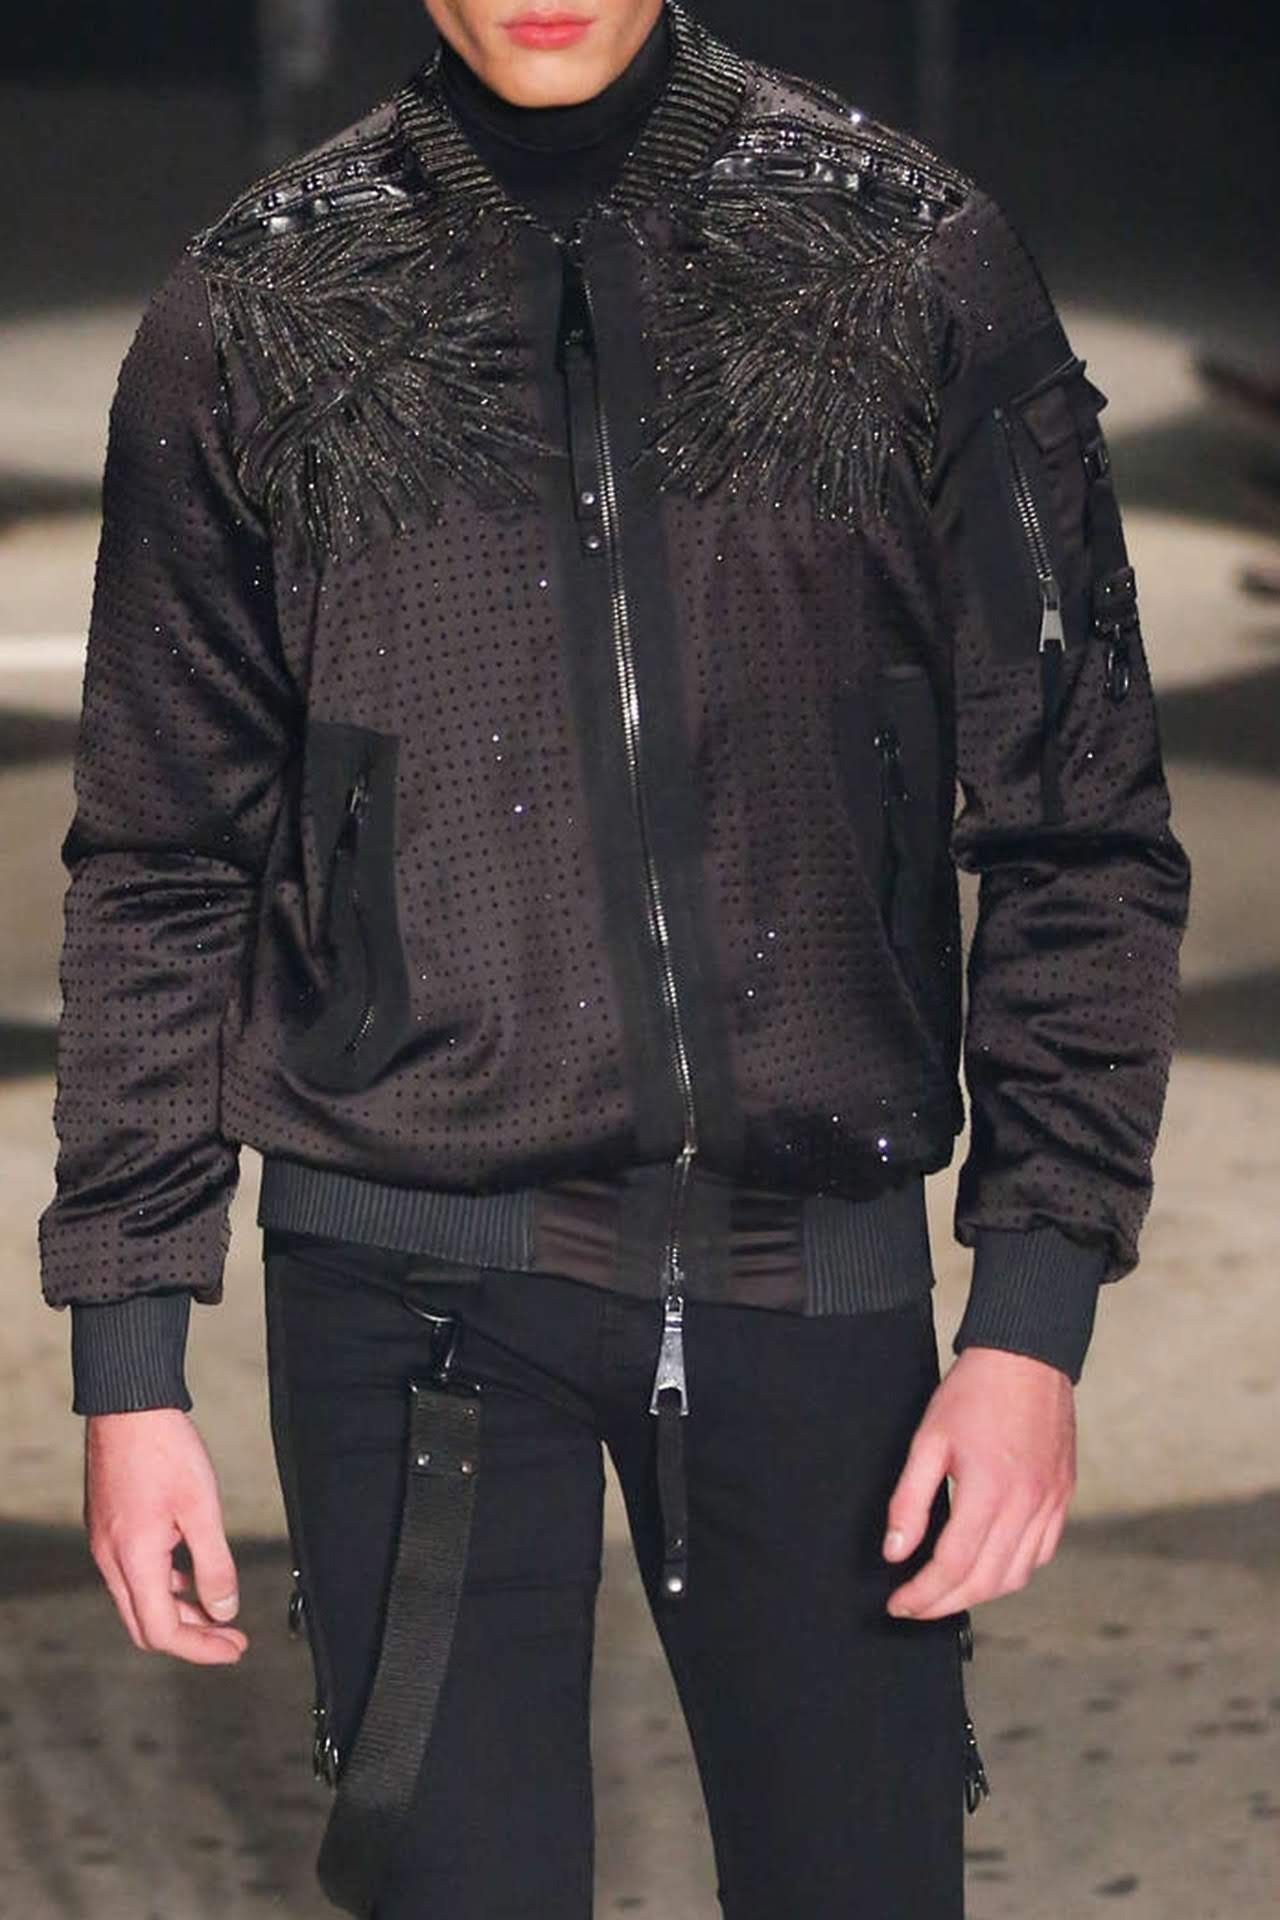 Pin By Alphamale Storybook S On Headless Males Euro Gq Men Bomber Jacket Mens Fashion [ 1920 x 1280 Pixel ]